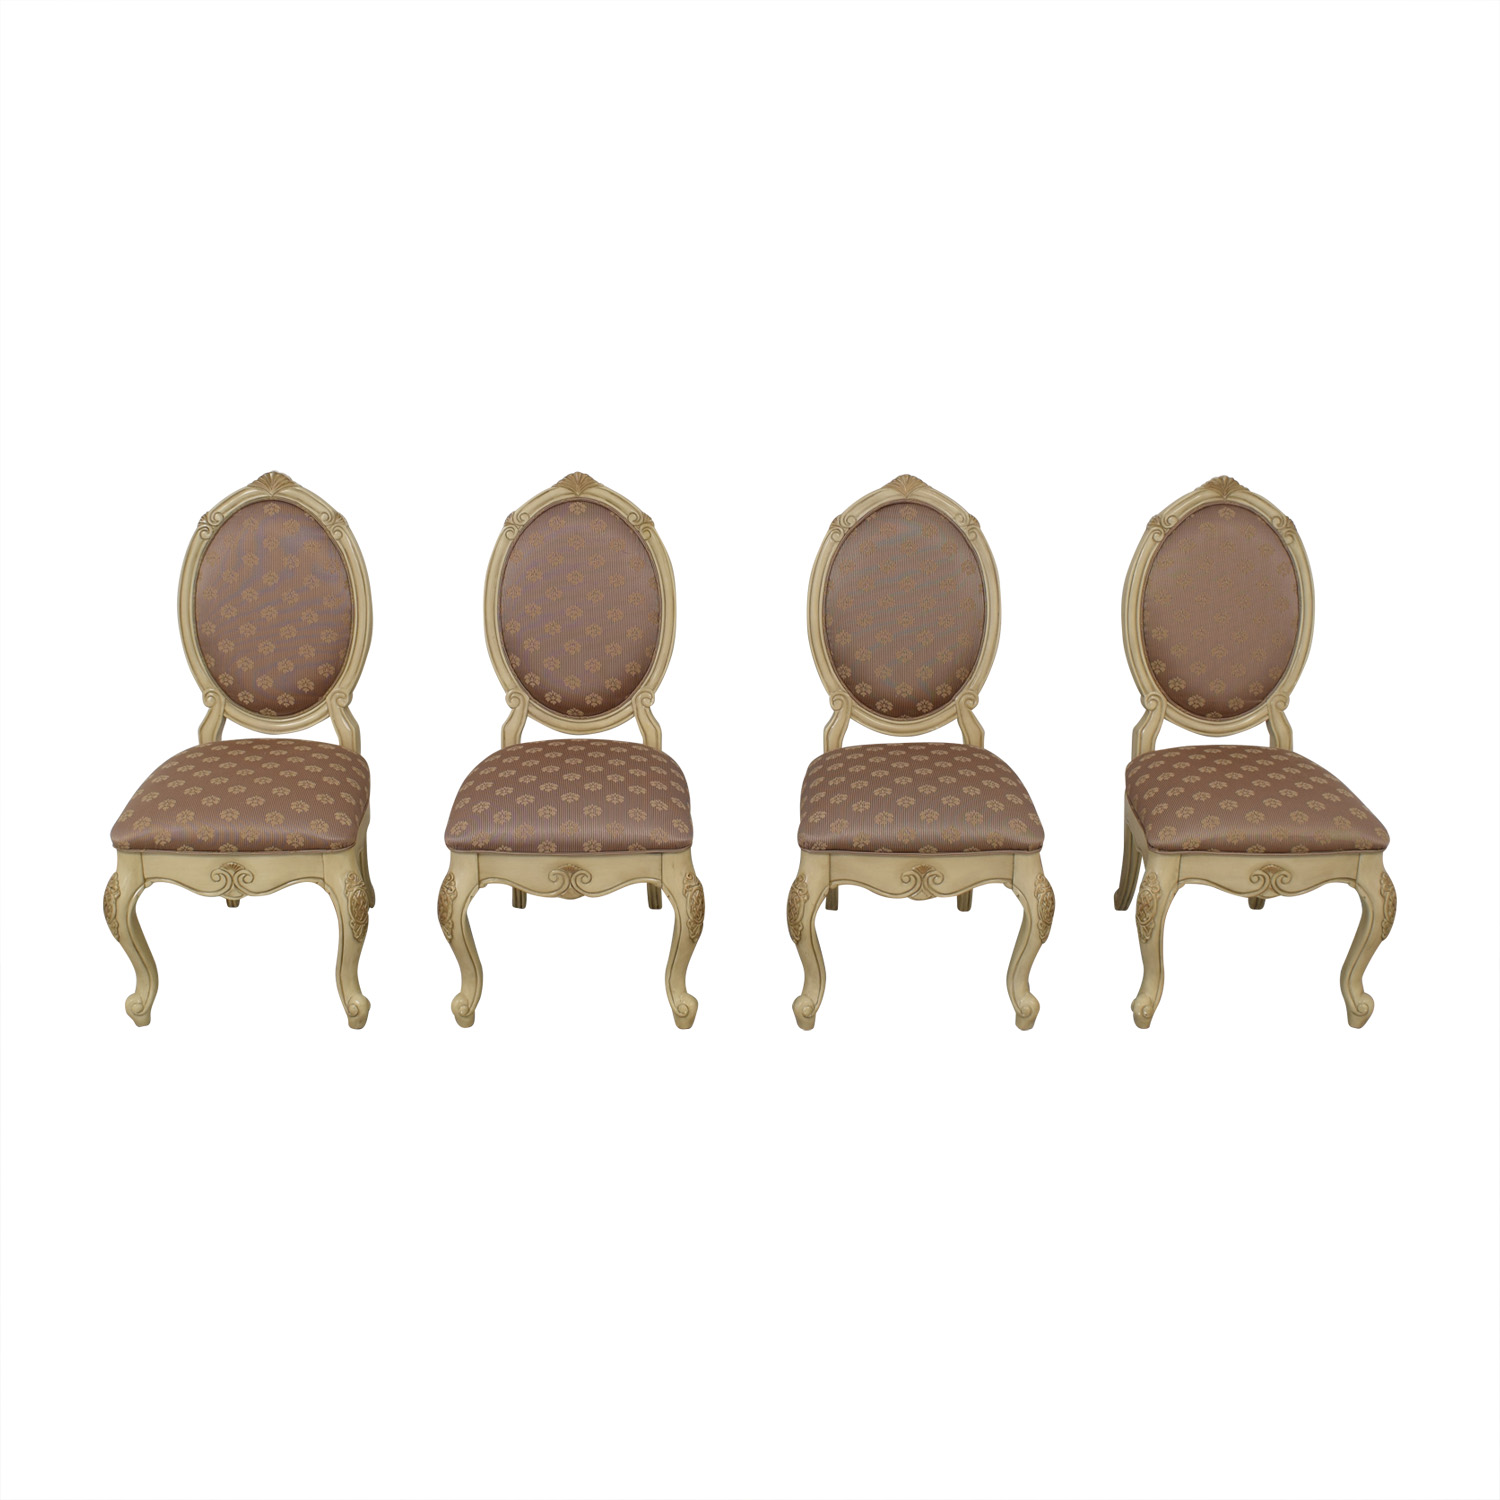 AICO AICO Michael Amini Set of Lavelle Blanc Side Chairs